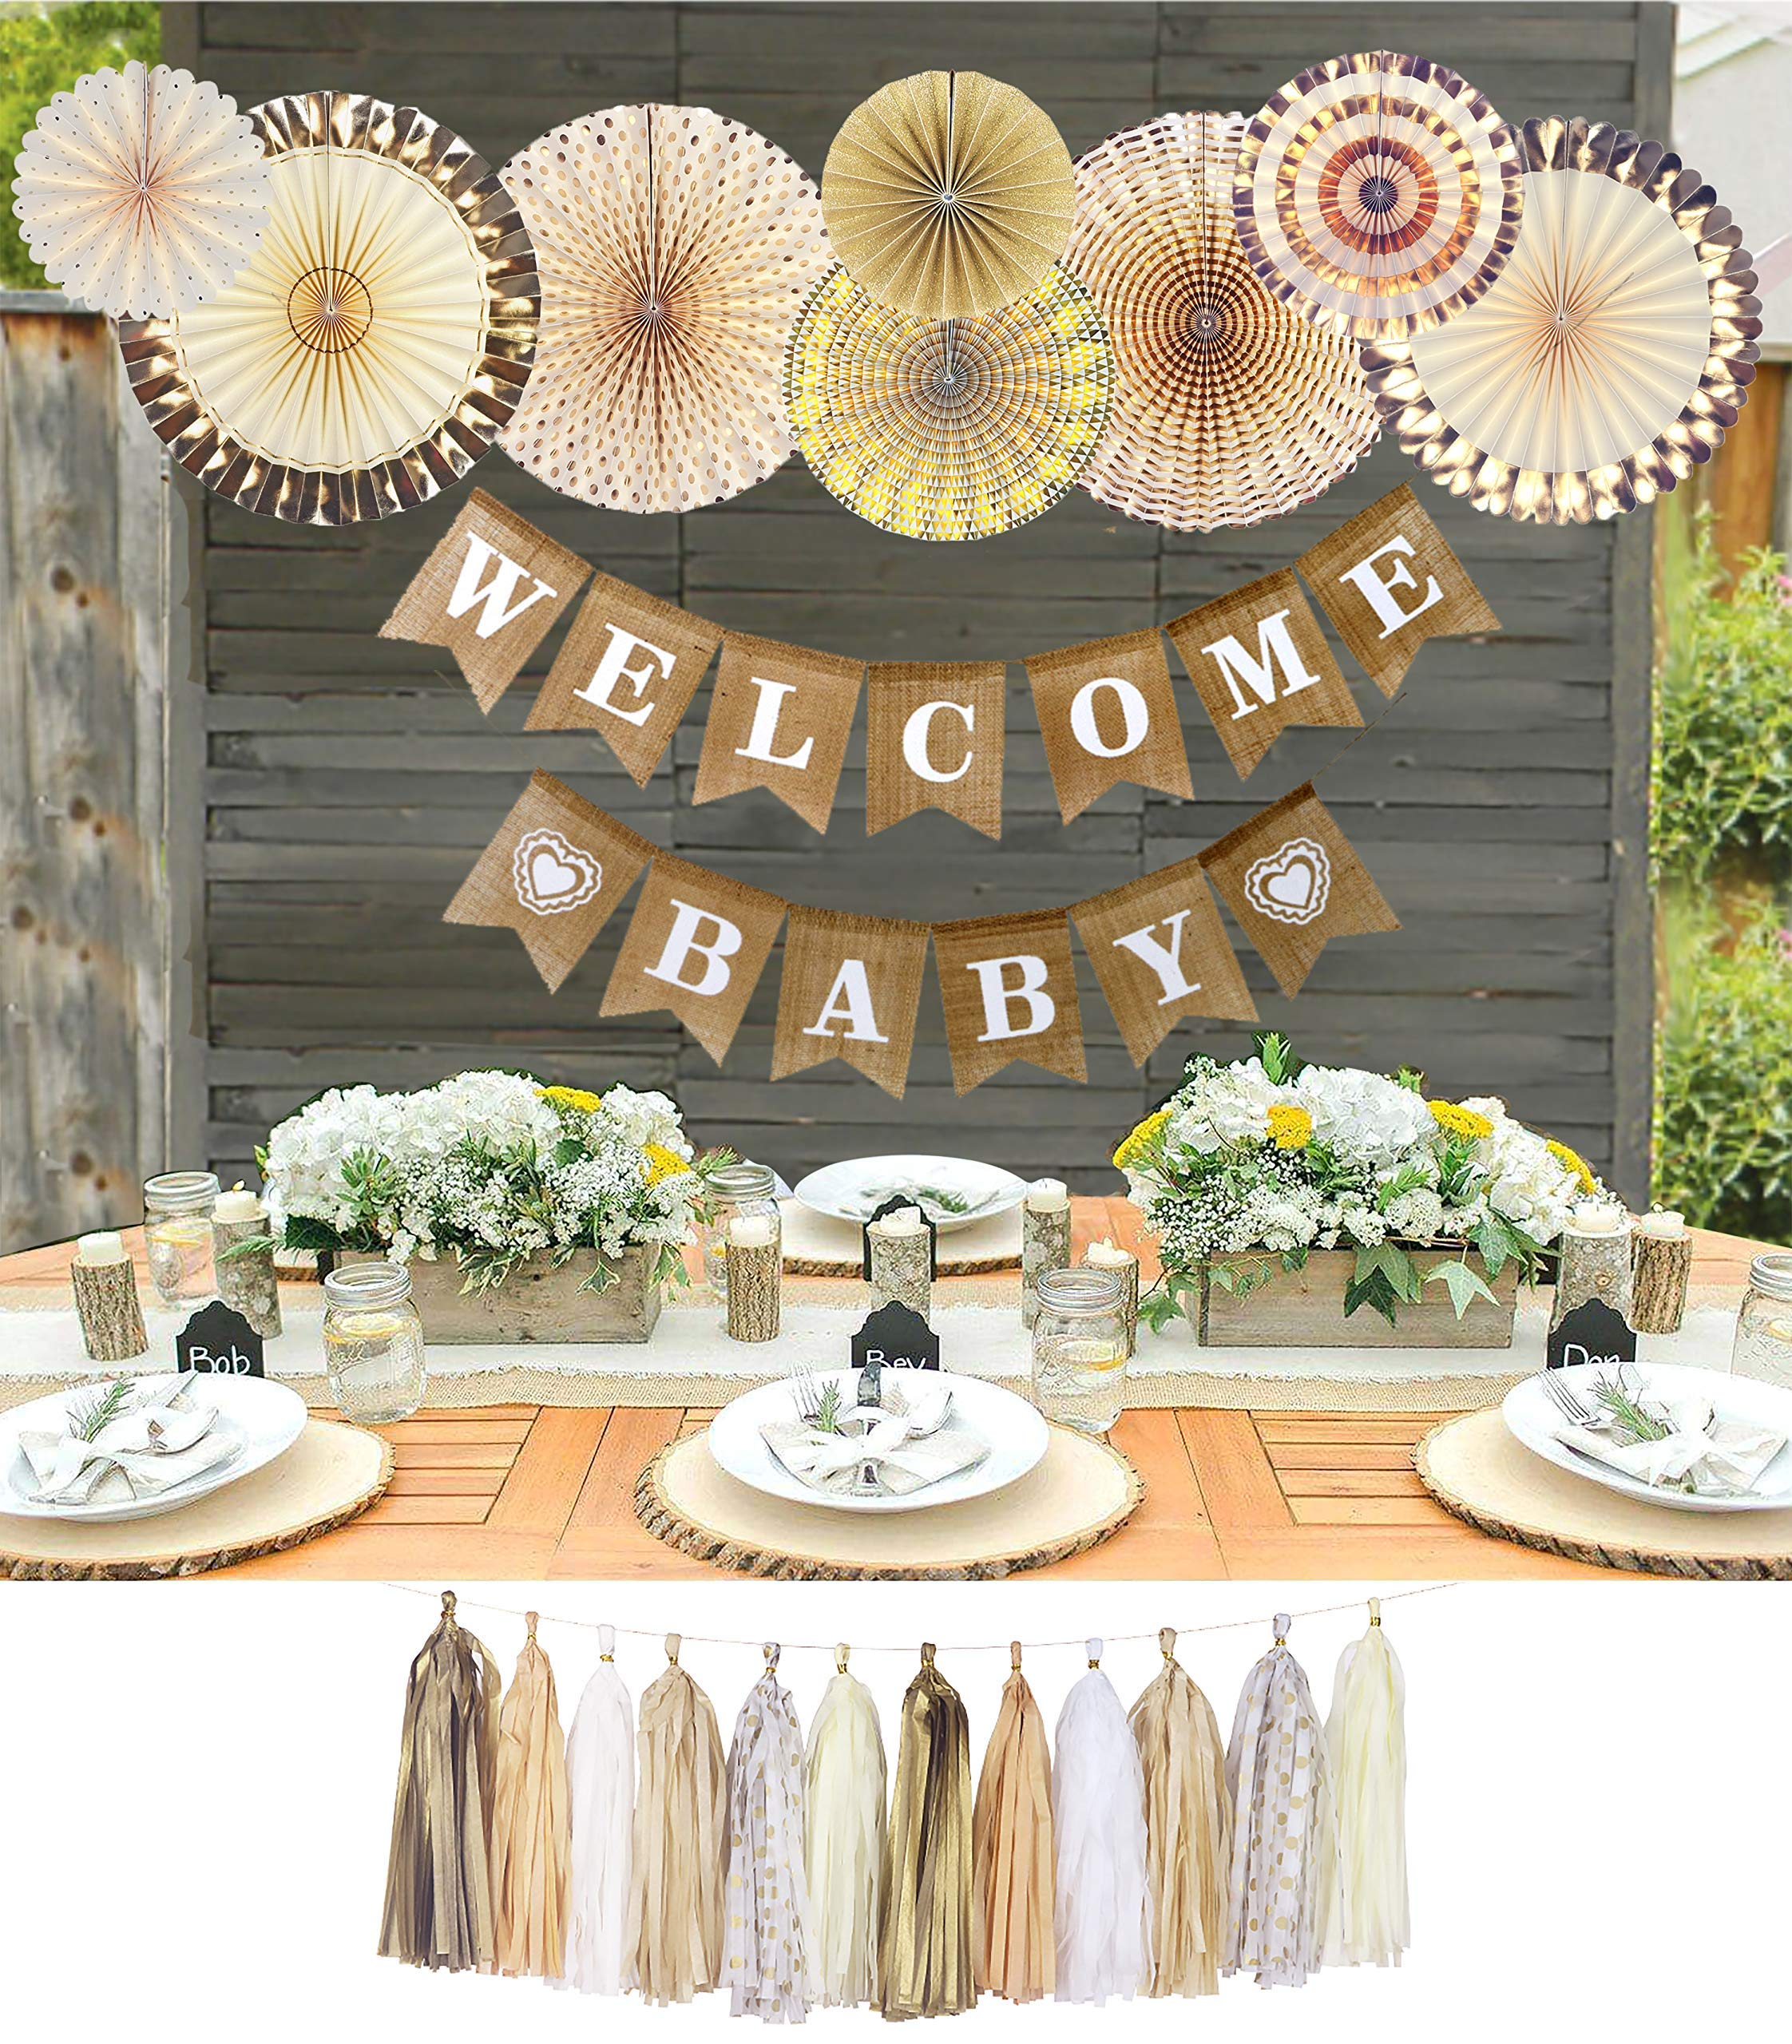 YARA Neutral Baby Shower Decorations for Coed, Unisex, Boy or Girl, Rustic Welcome Baby Banner in Burlap, Tassels, Gold and White Gender Neutral Baby Shower Decor Set, Gold Paper Fans Decorations by Yara Enterprises (Image #7)